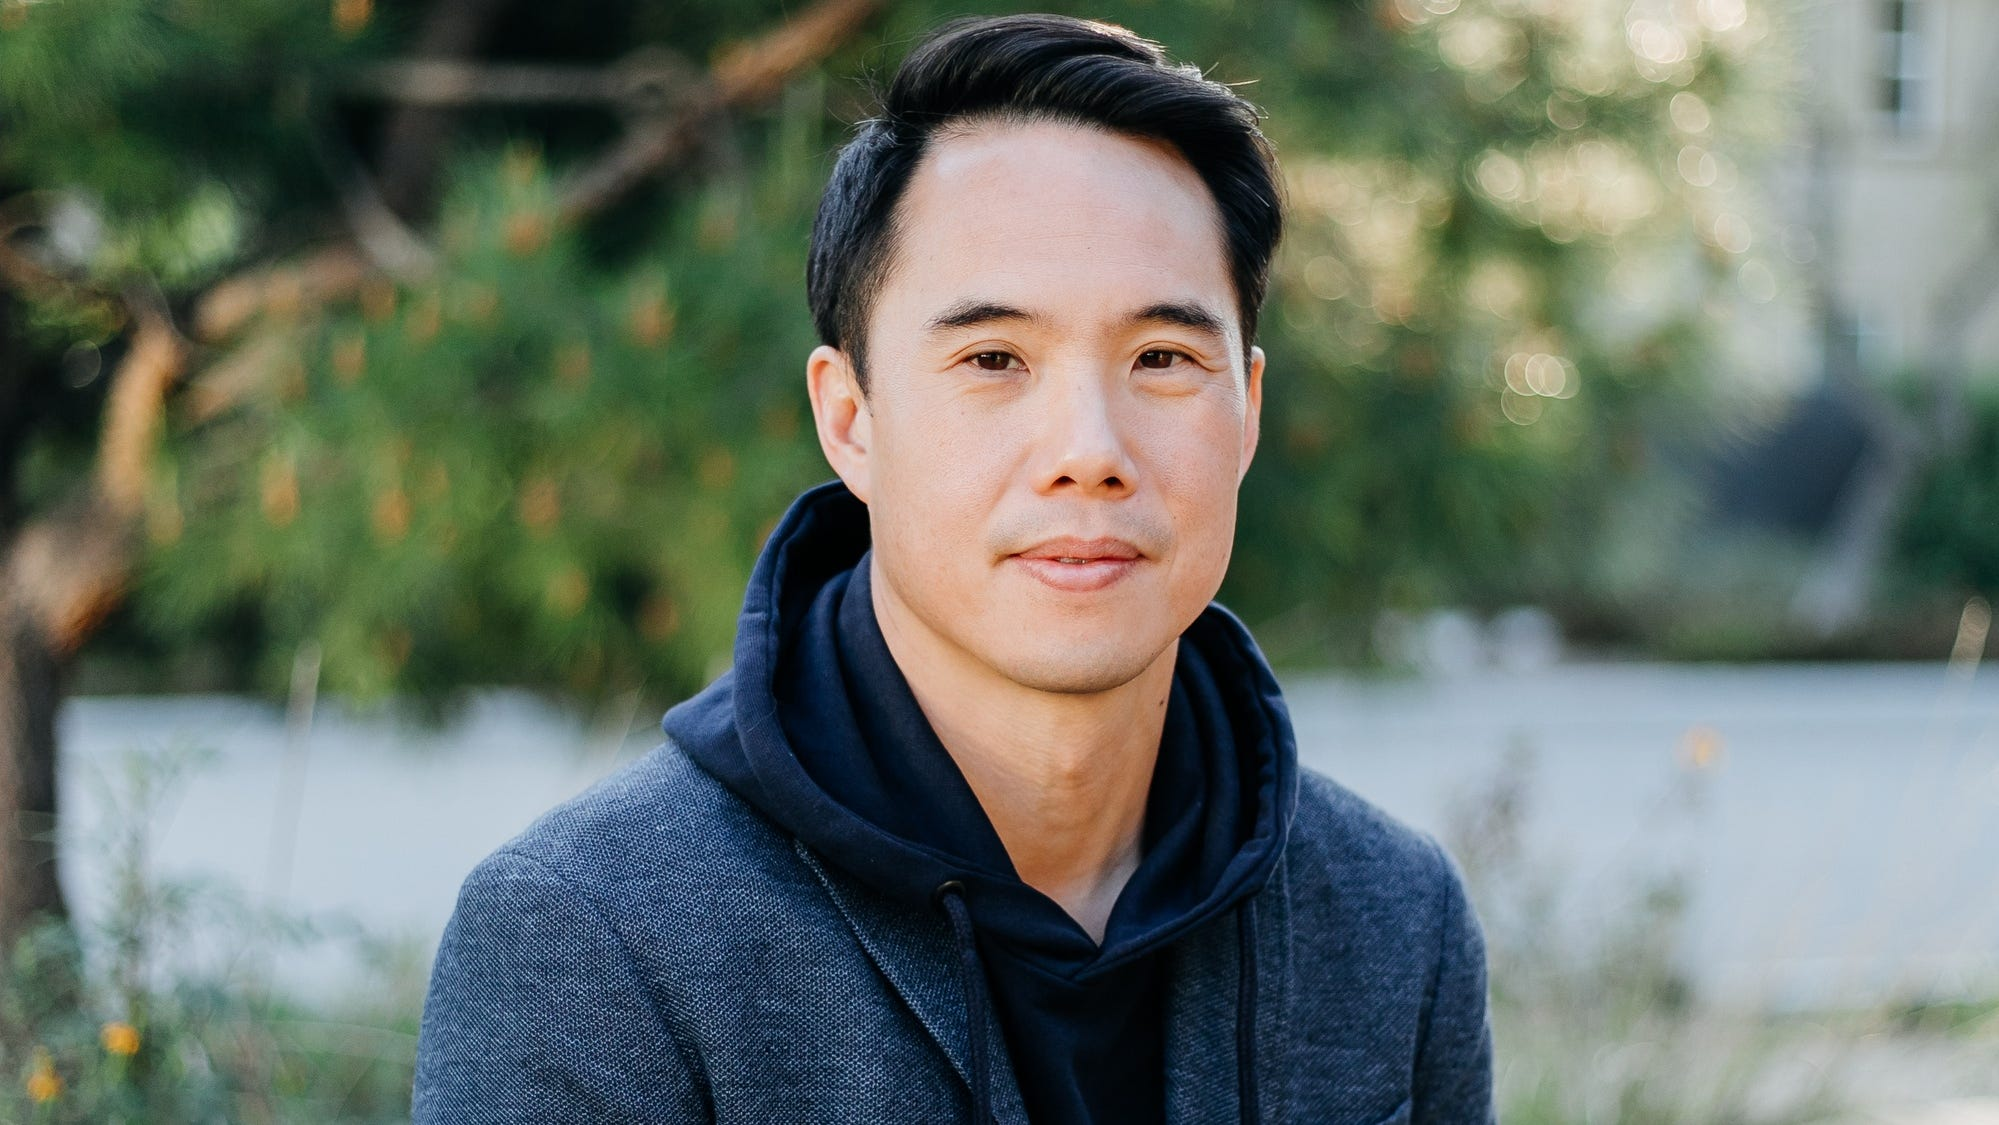 www.austin360.com: 'It's hard to even talk about': Charles Yu and Lisa Ling unpack anti-Asian hate in U.S.